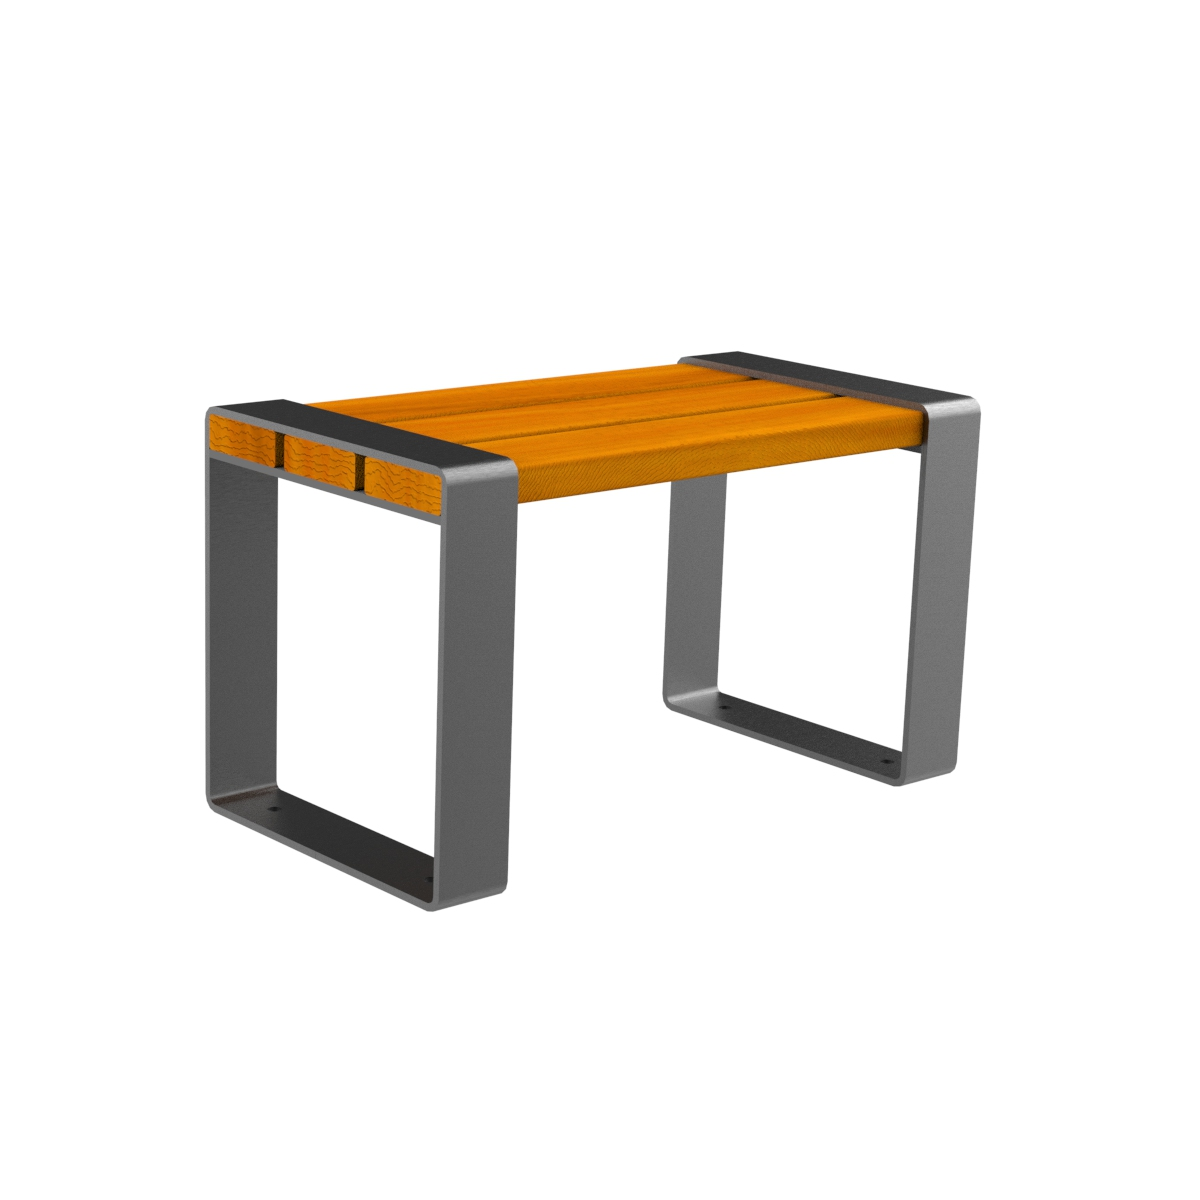 Marina Wood Bench urban furniture without backrest parks and gardens